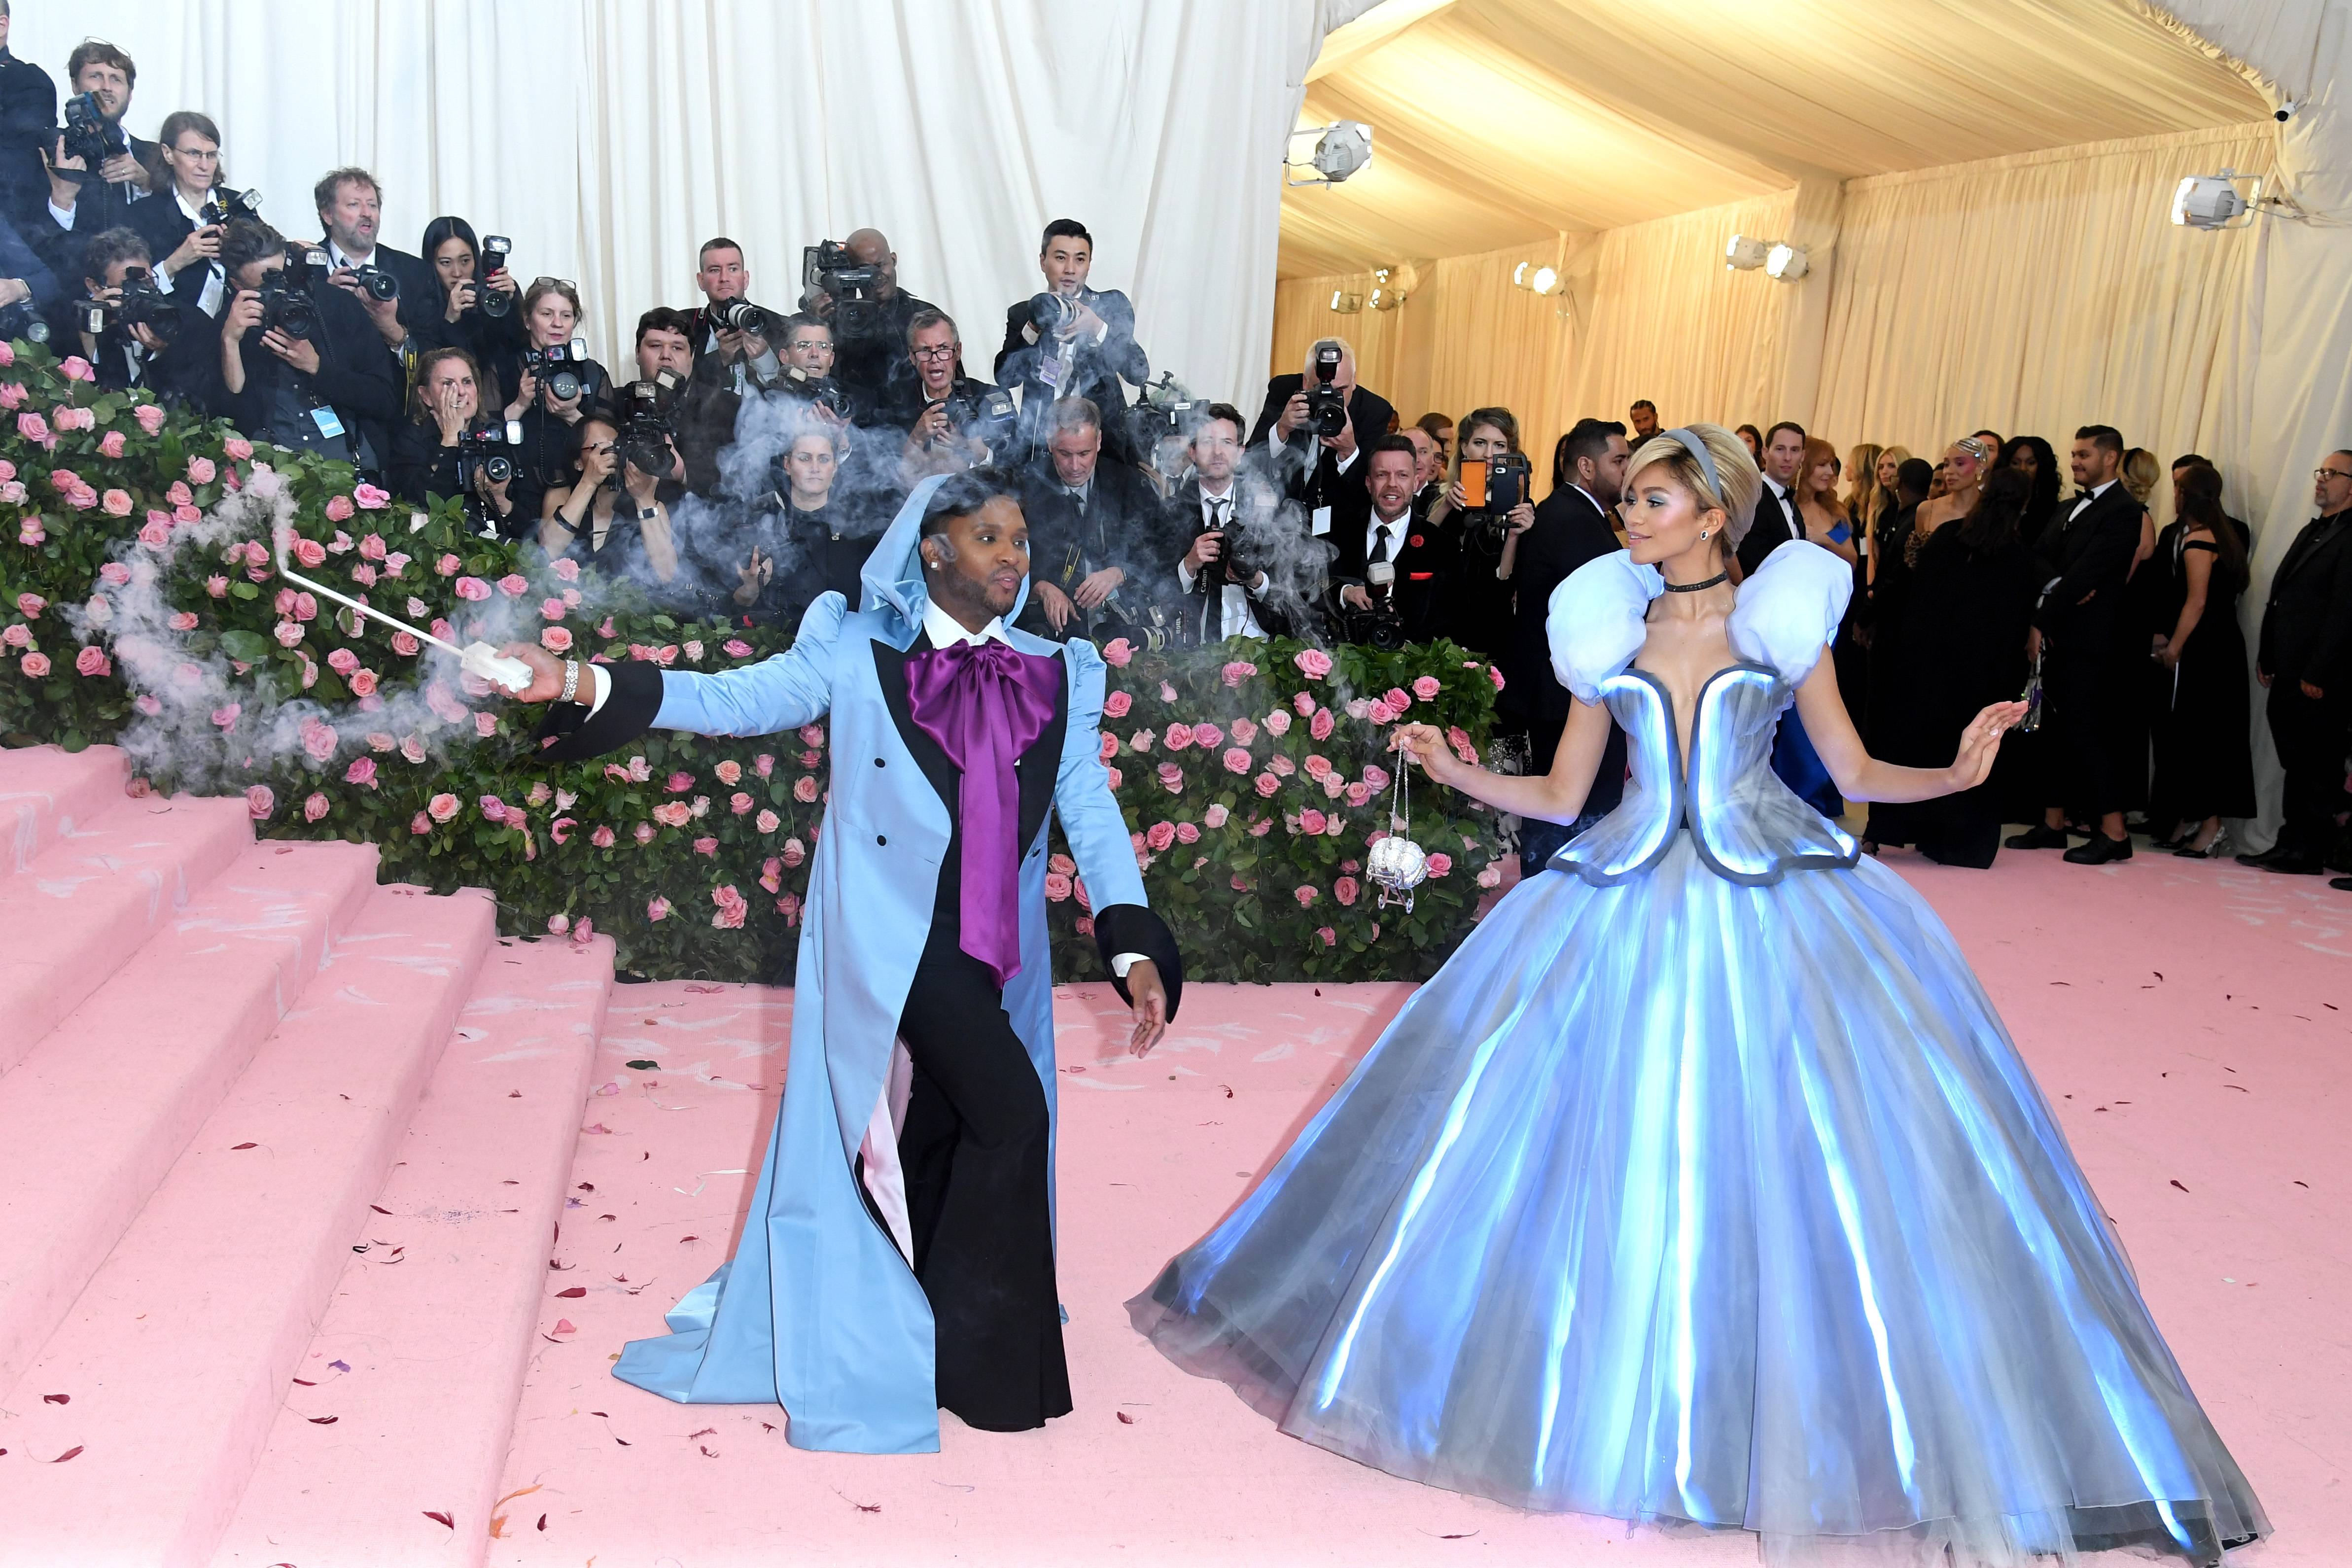 Princess Zendaya - Our girl Z has slowly become known to nail the MET Gala themes and the 2019 'Camp' theme was no different. Not only did she arrive in a custom Tommy Hilfiger gown looking like a brown Cinderella, with stylist Law Roach as her fairy god muva, Zendaya even left a glass slipper on the steps while carrying a customJudith LeiberSwarovski crystal-embellished, Cinderella carriage clutch purse. We are here for the theatrics!(Photo: John Shearer/Getty Images for THR)